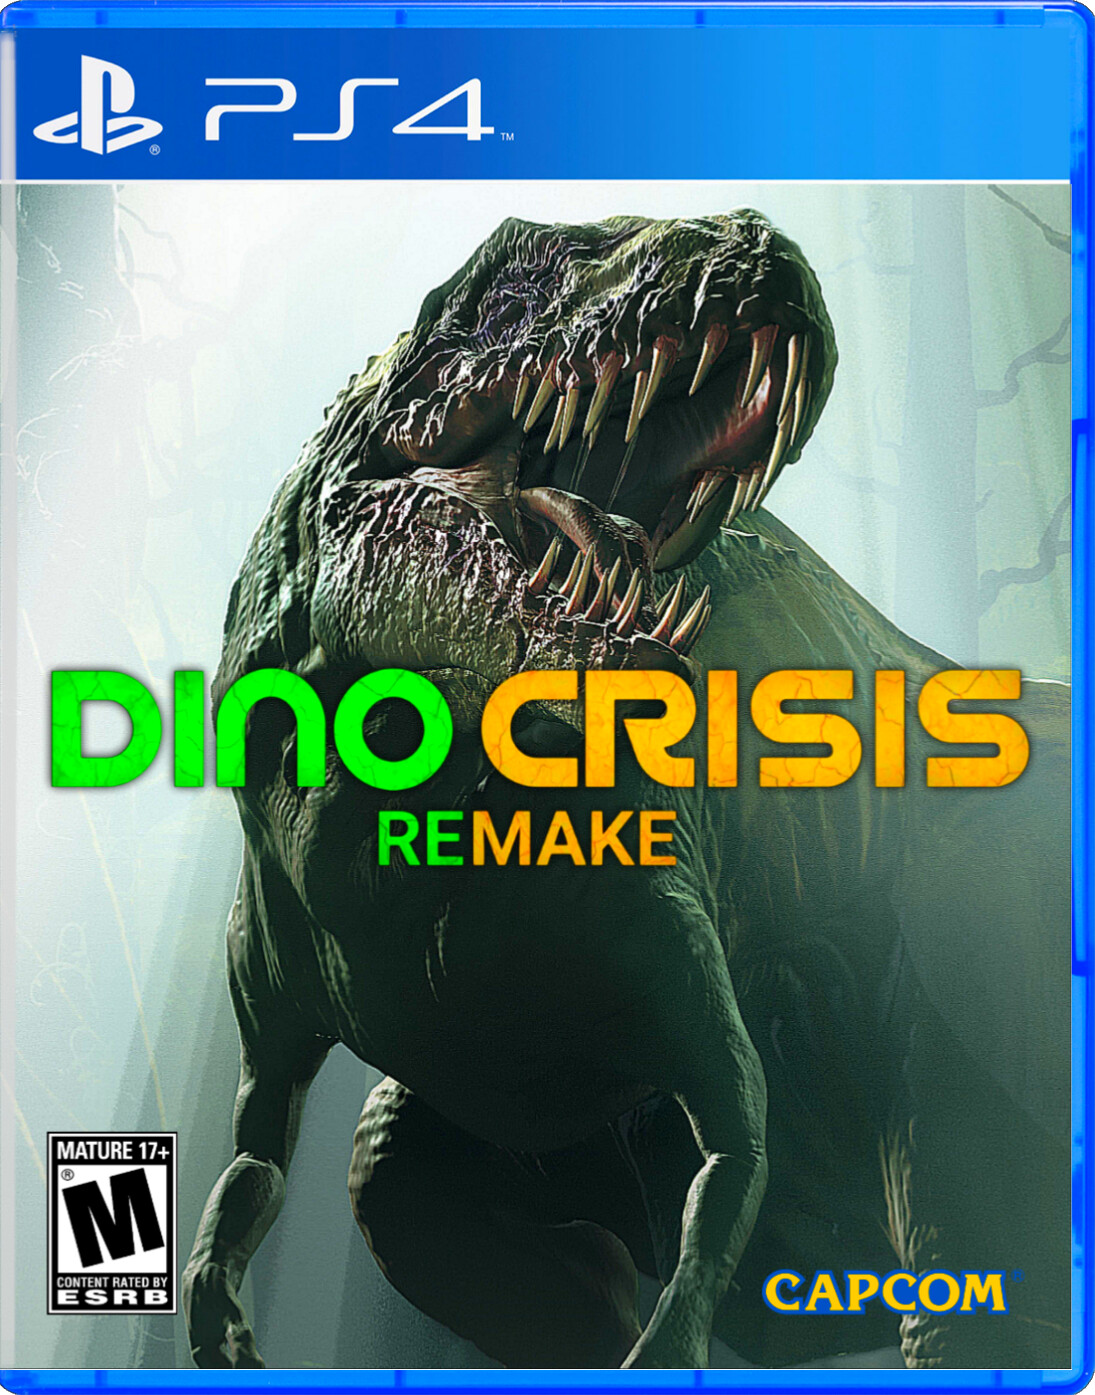 CANAL Gamerk informe - DINO CRISIS REMAKE COVER PNG